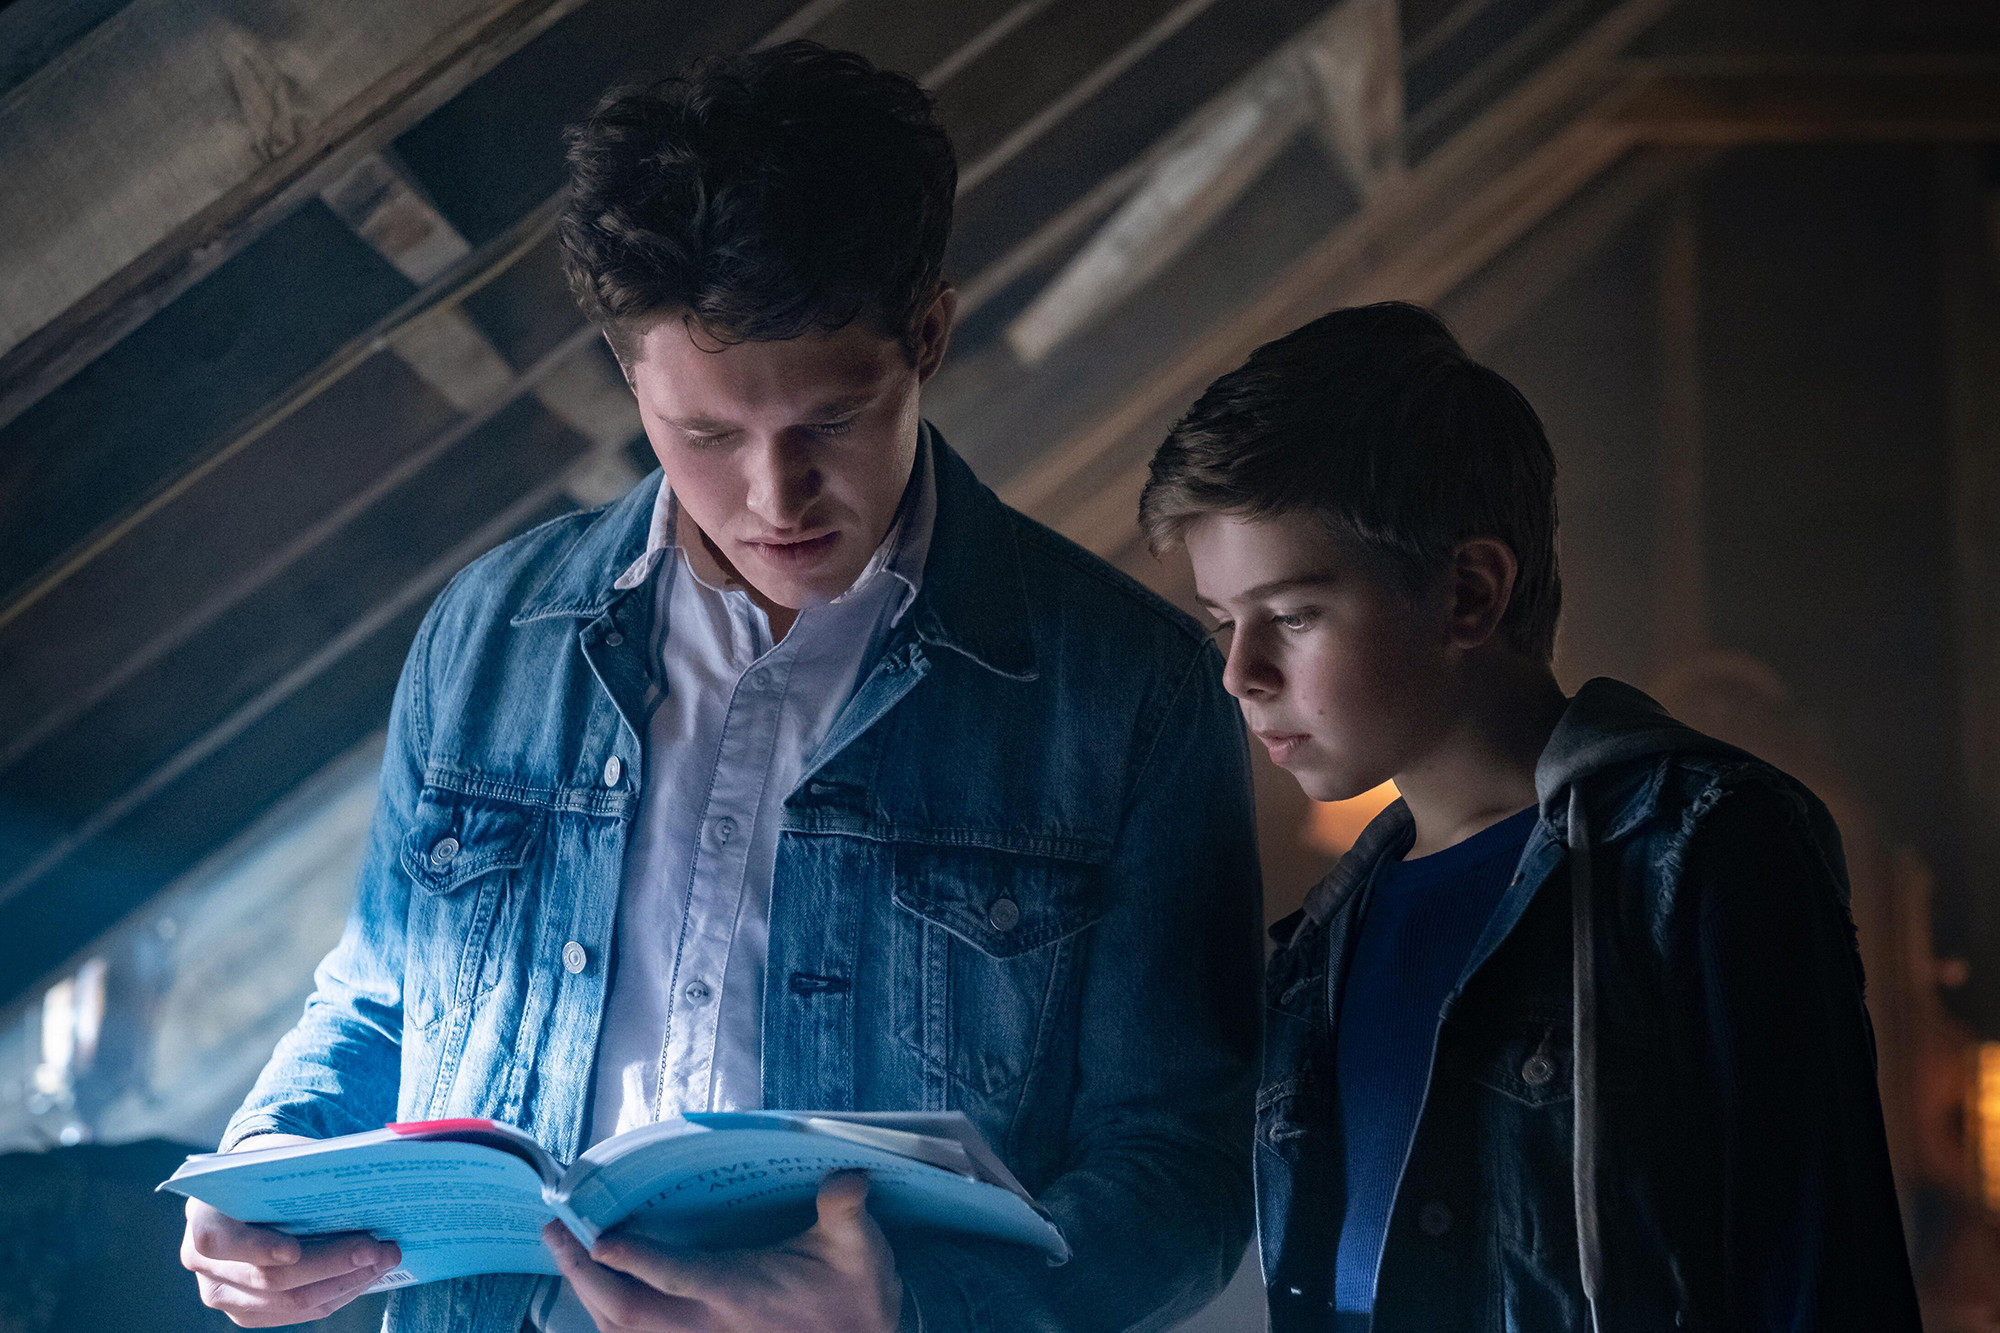 2 teenagers reading a paper in a dark attic